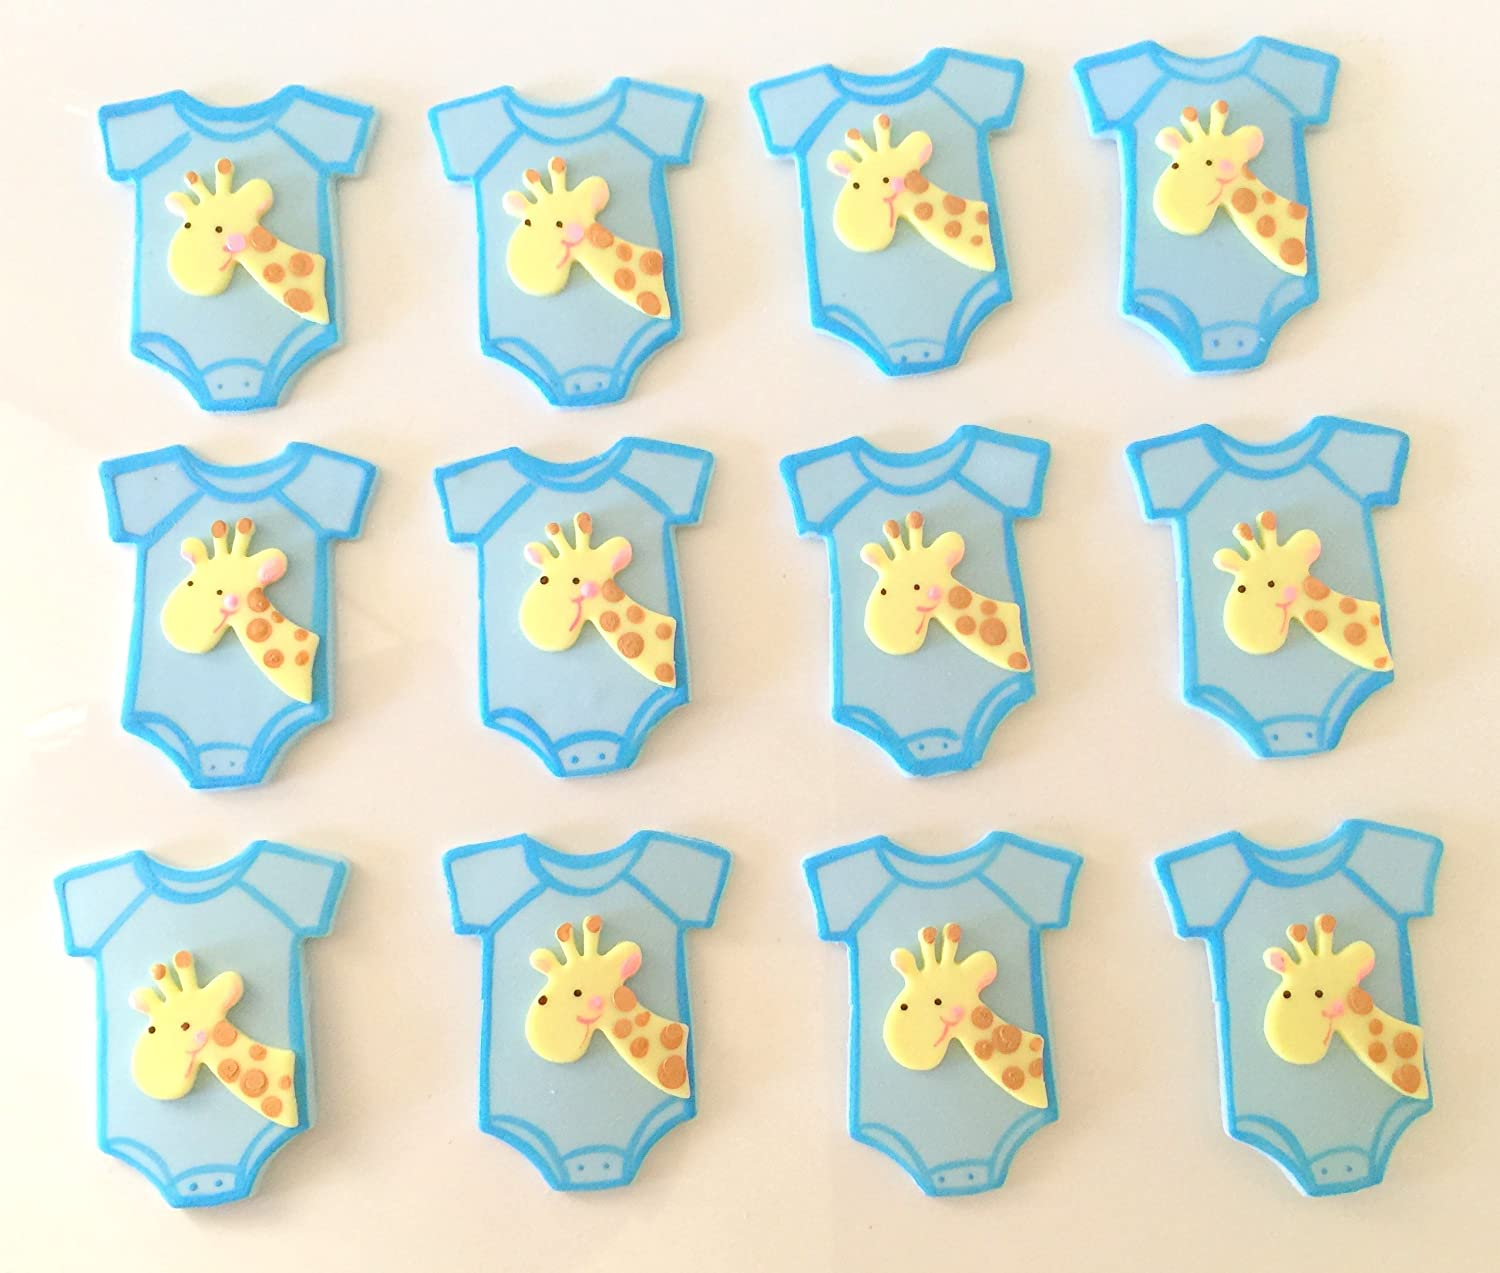 Edible cupcake decorations baby shower - 12 Baby Shower Bib Giraffe Decorations For Boys These Pieces Are Made Out Of Cold Porcelain And Can Be Used For Many Projects Party Favors Cupcake Toppers